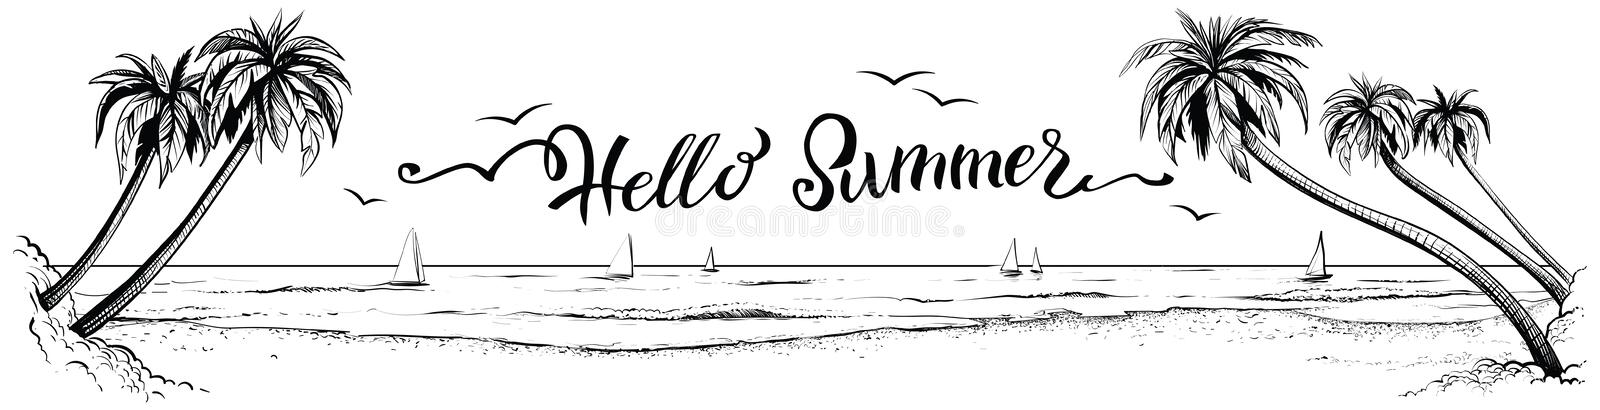 Hello summer, lettering with panoramic beach view. Vector illustration. Hello summer, lettering with panoramic beach view. Vector illustration of ocean or sea royalty free illustration